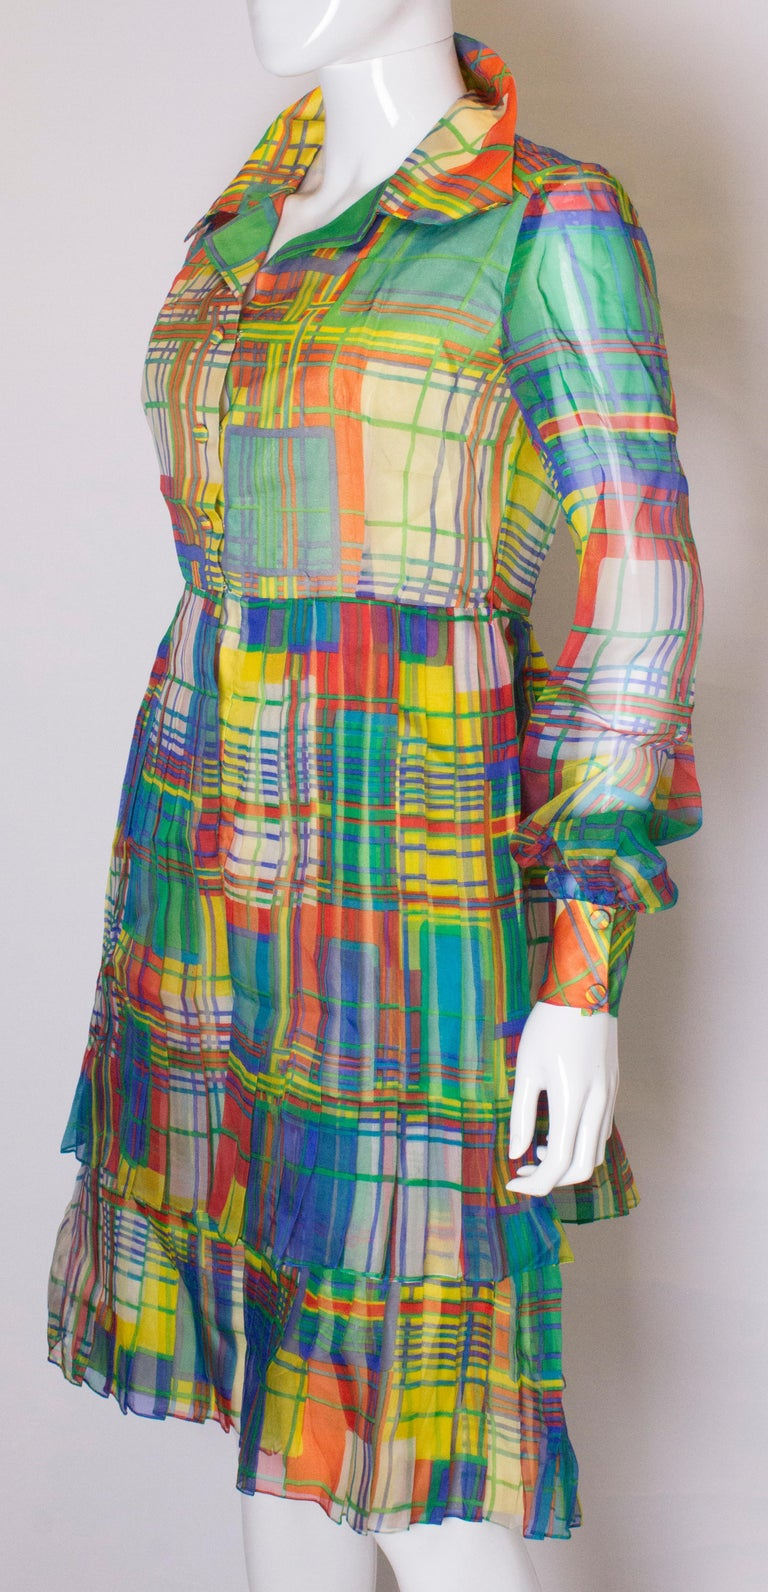 Vintage Silk Chiffon Dress by Nettie Vogue London In Good Condition For Sale In London, GB